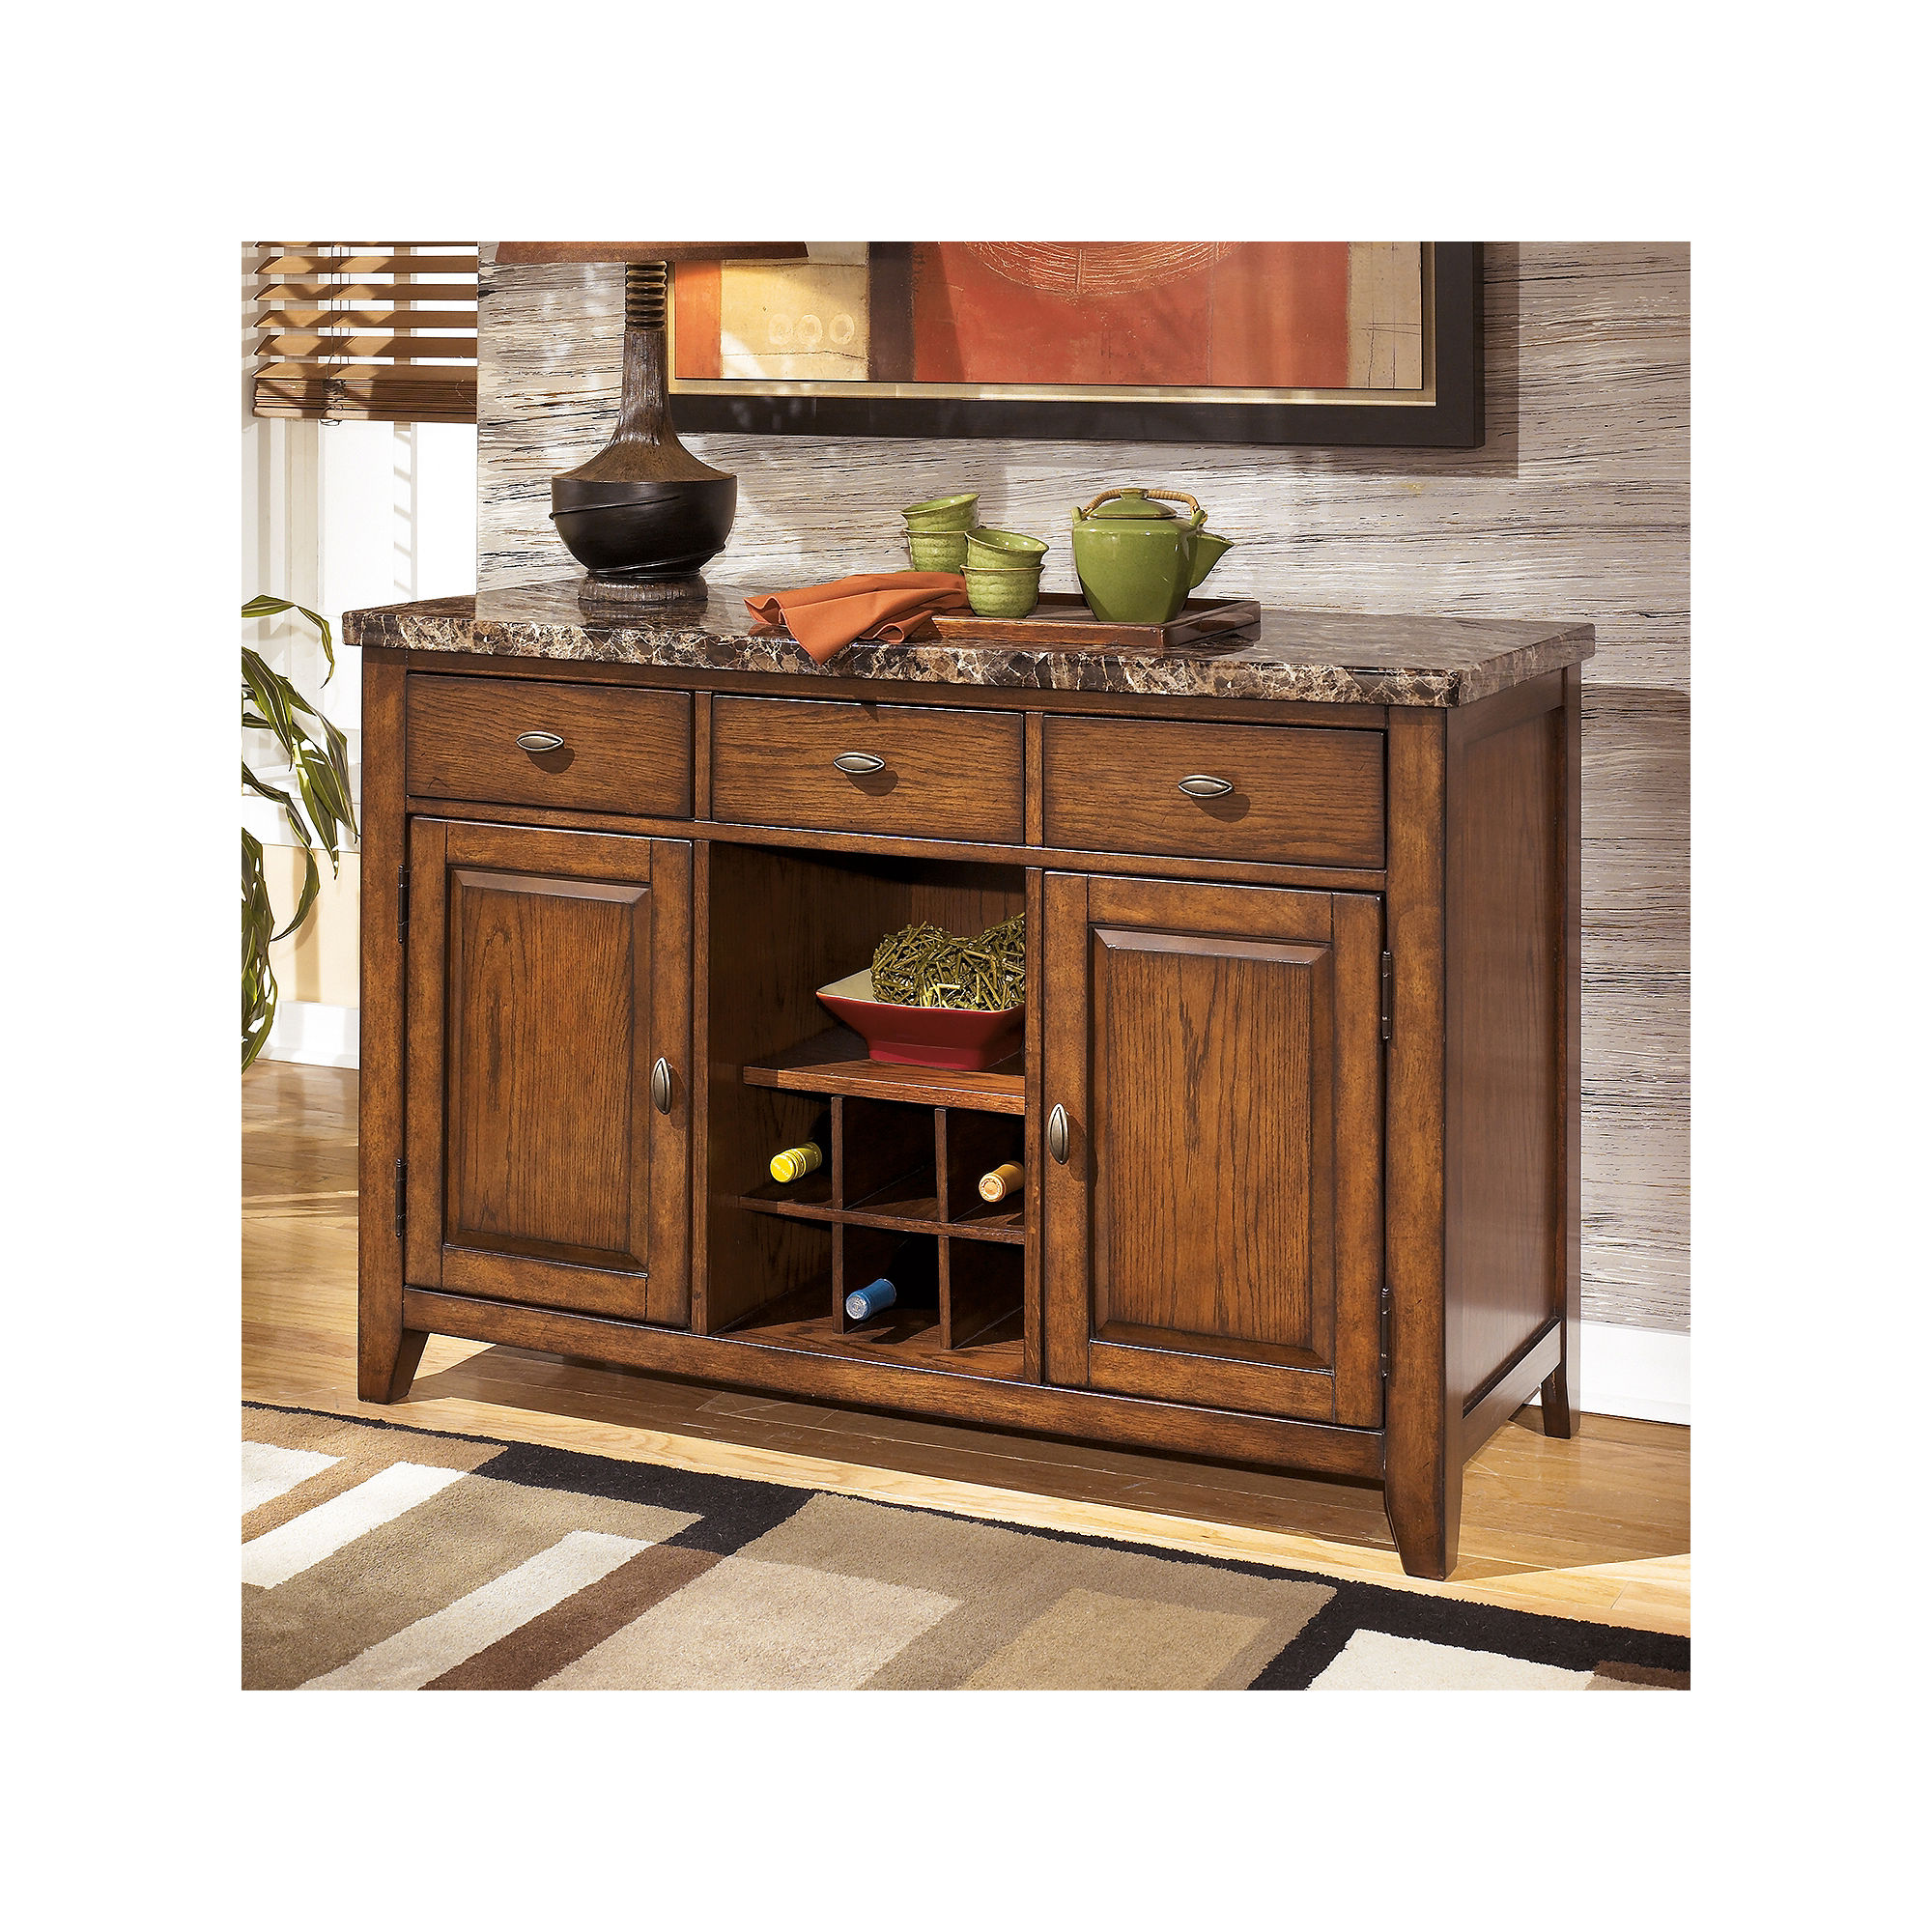 Signature Design by Ashley Lacey Dining Room Server